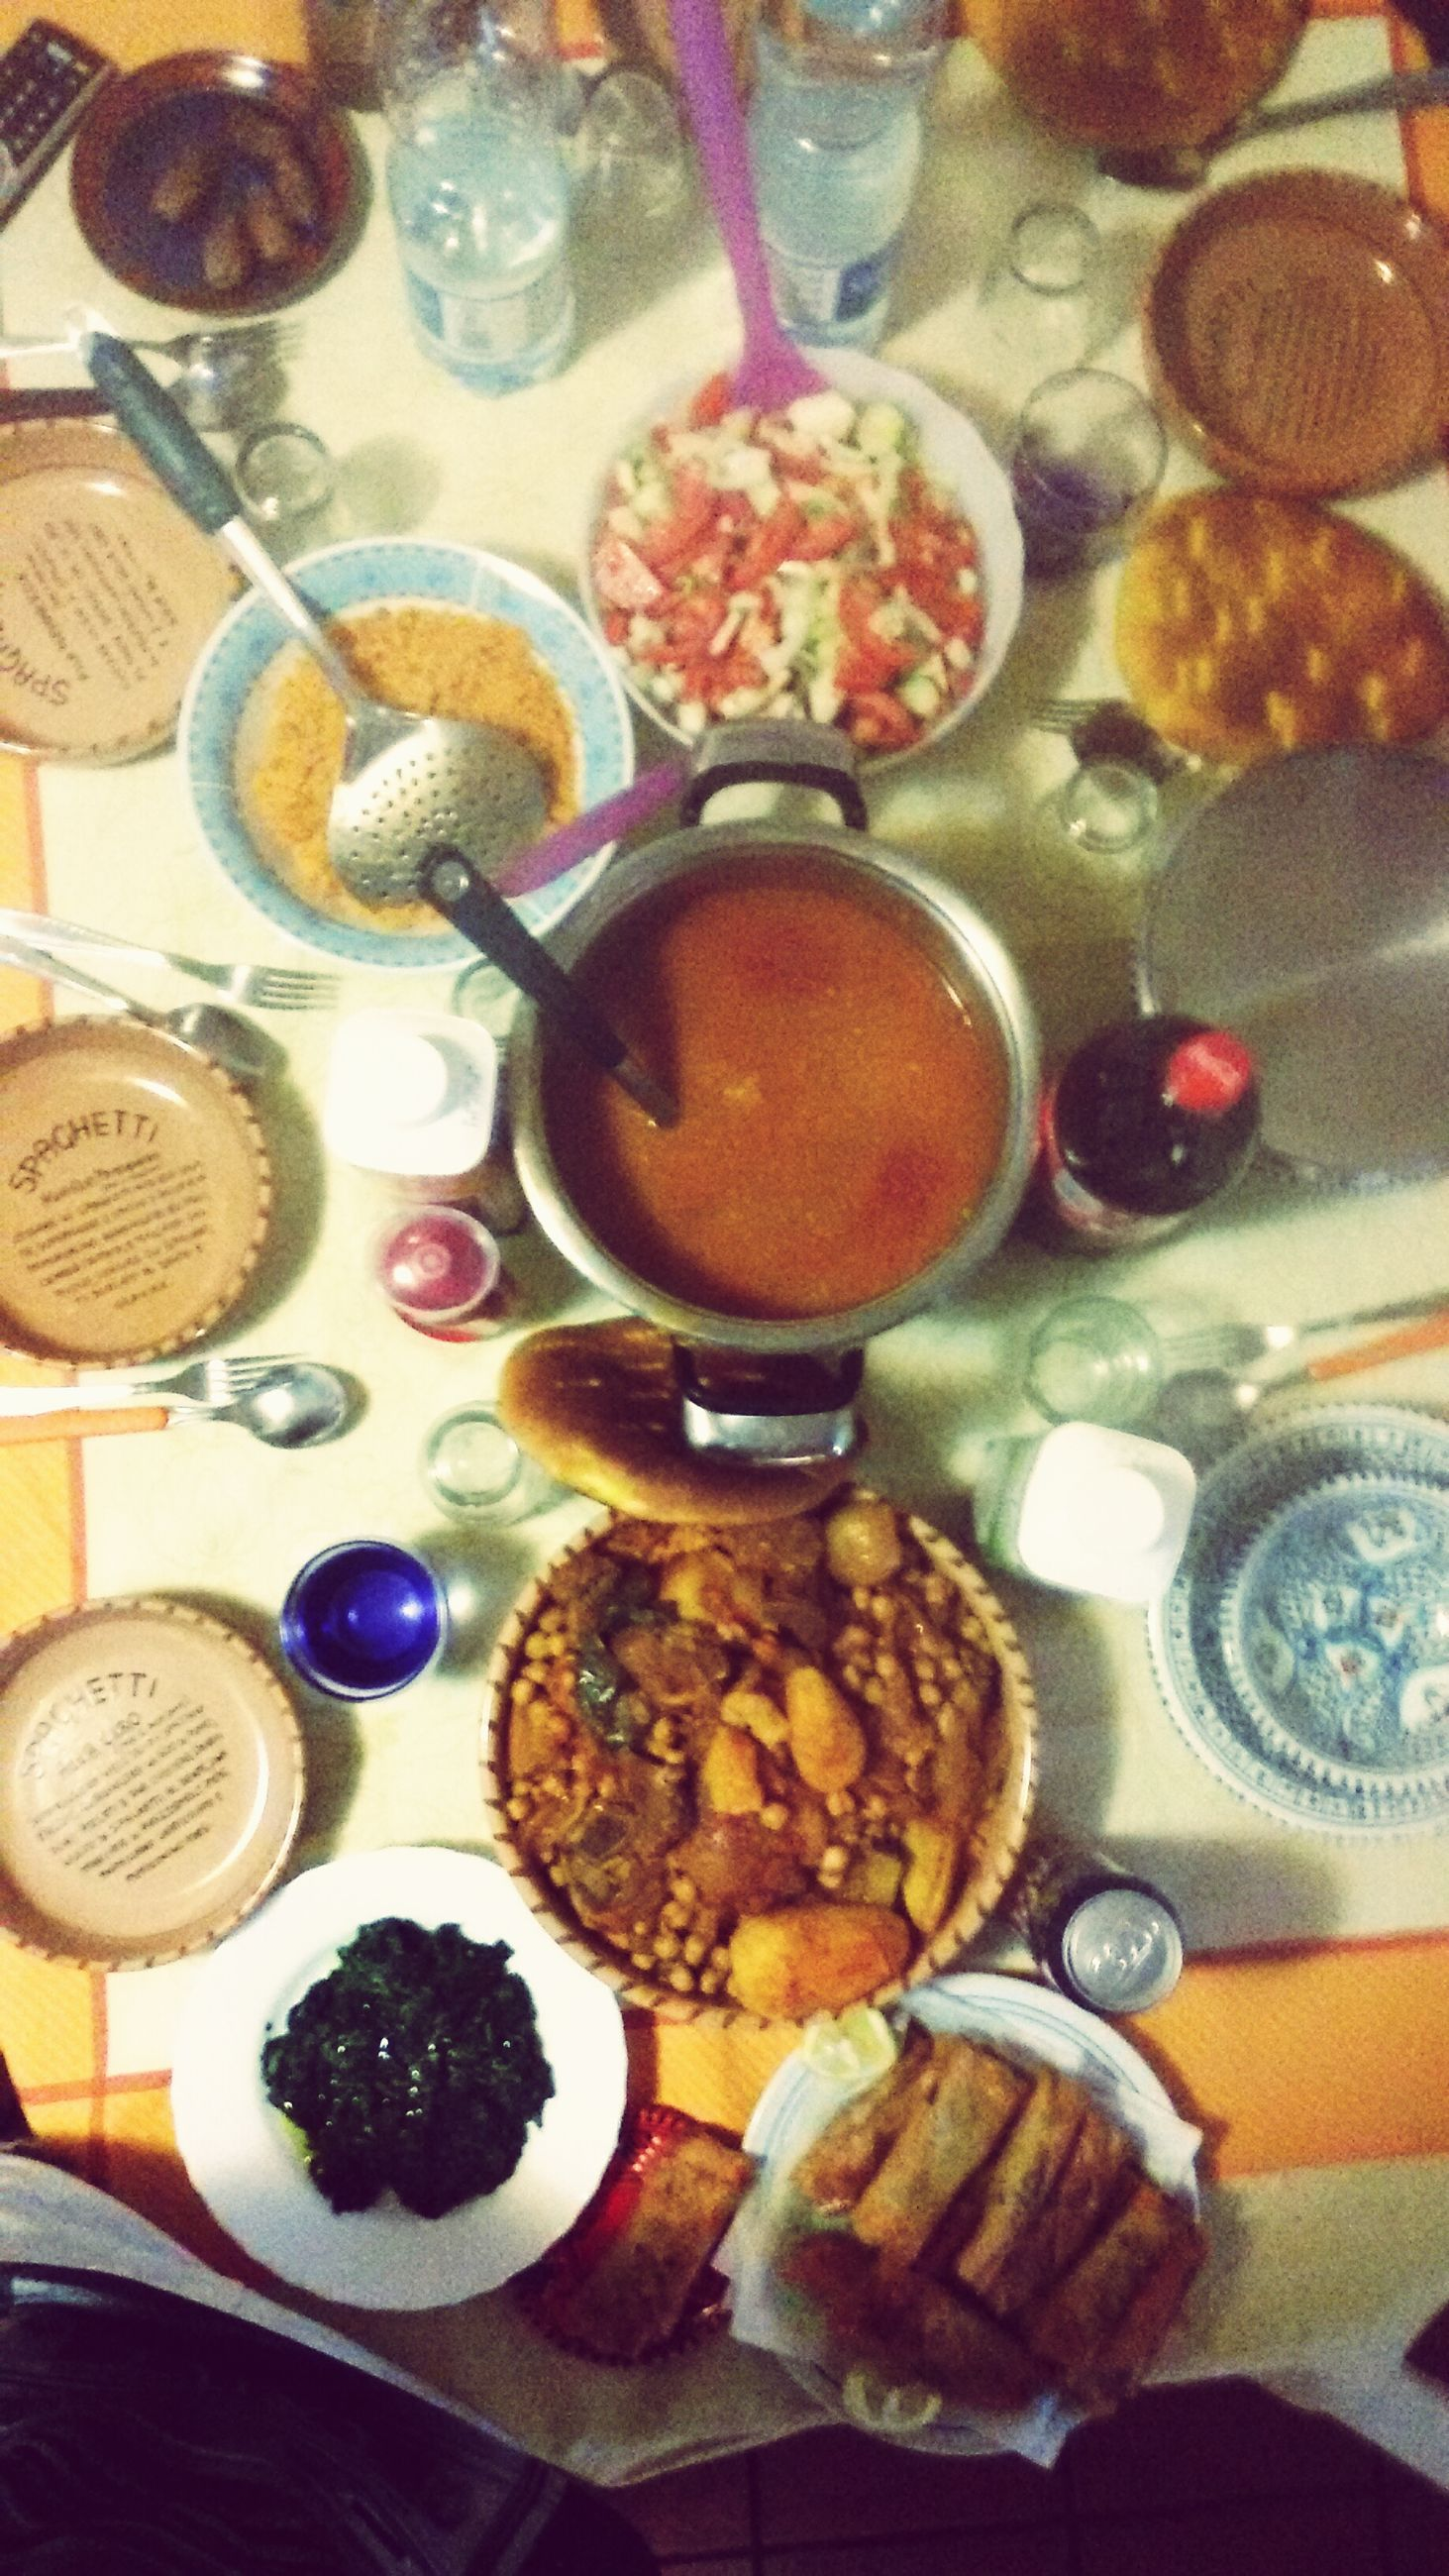 indoors, food and drink, table, food, still life, freshness, high angle view, plate, sweet food, ready-to-eat, dessert, indulgence, variation, bowl, fruit, cake, spoon, drink, unhealthy eating